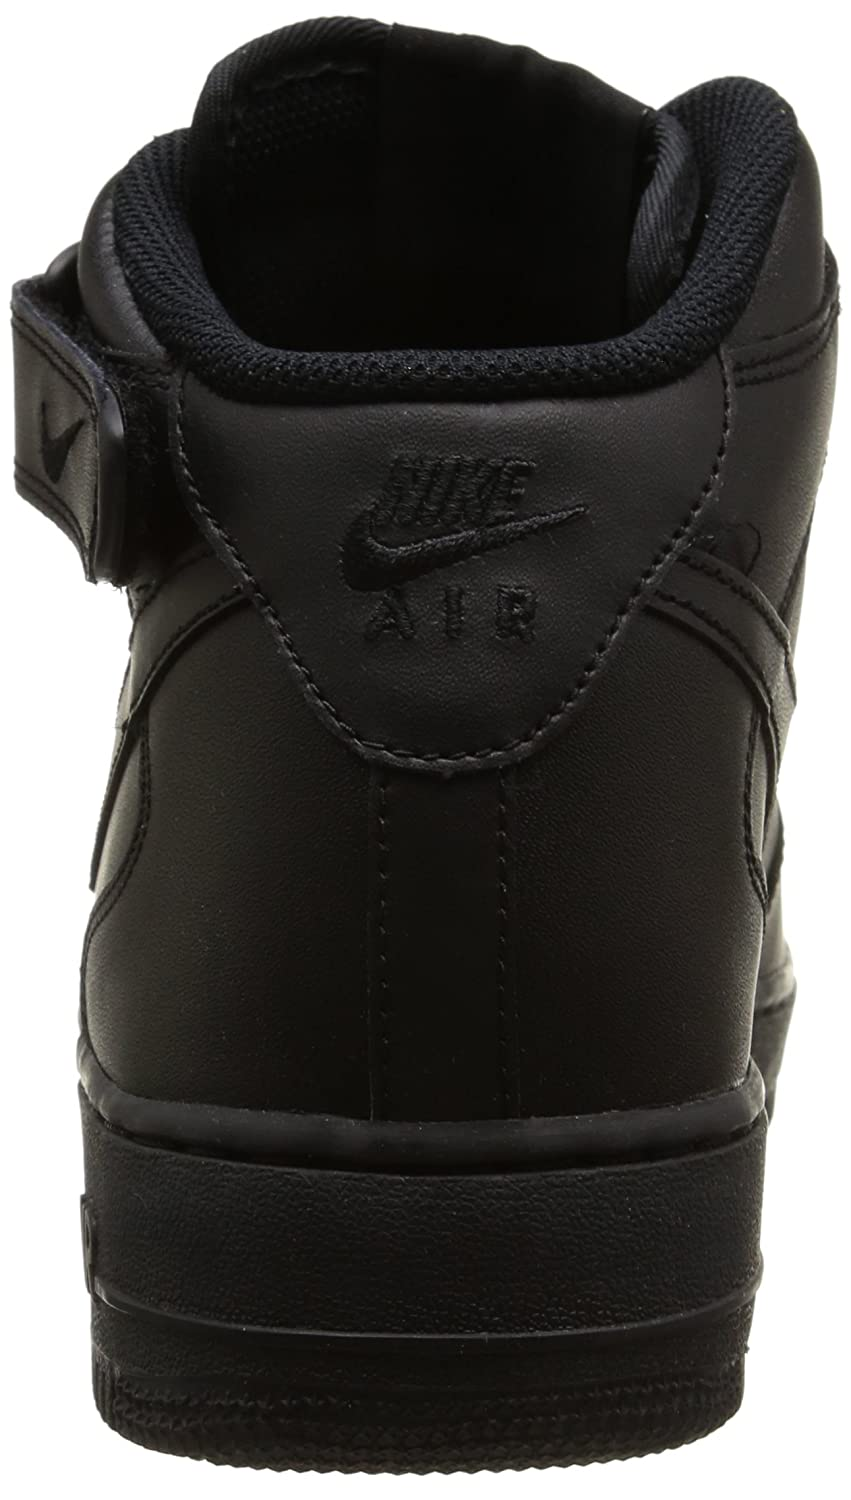 Nike Air Force 1 Mid 07 Baskets Hautes Homme